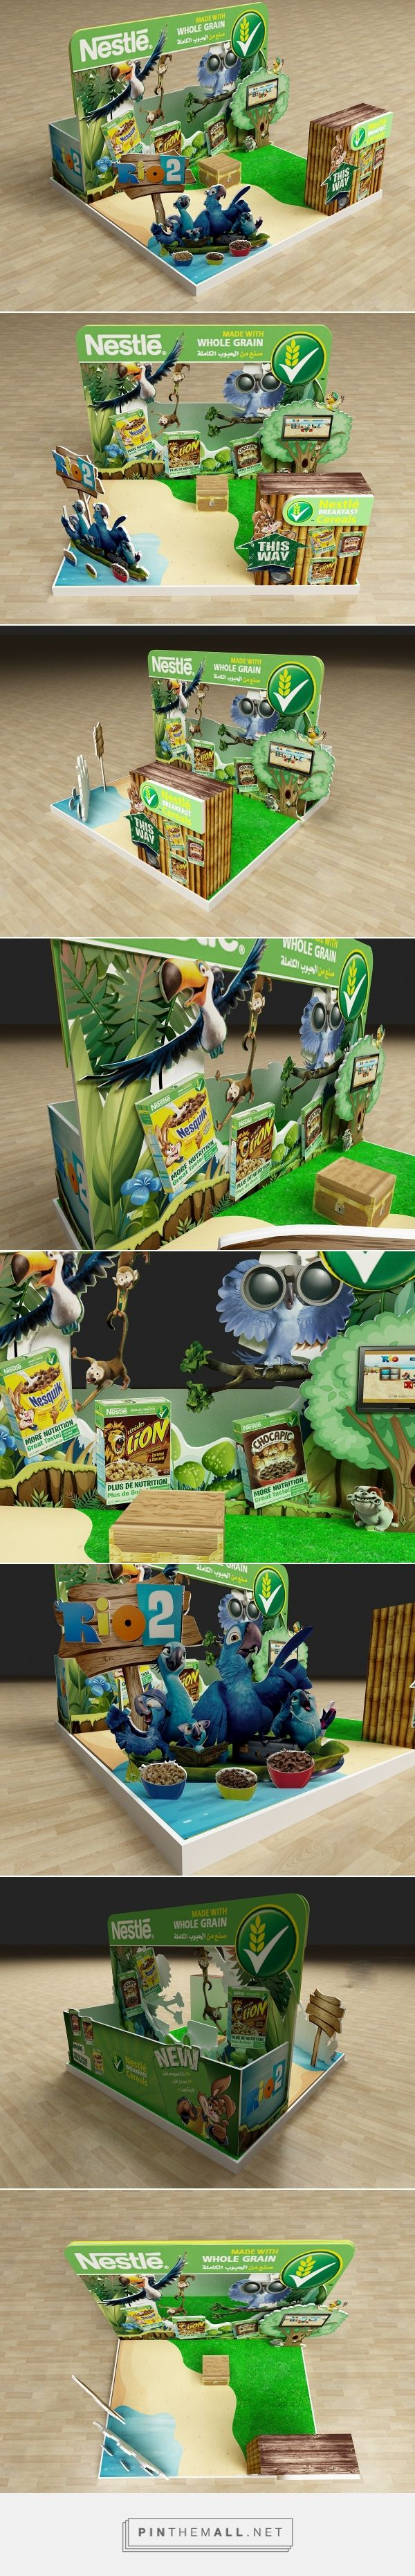 Nestle Rio2 Activation Booth on Behance  |  https://www.behance.net/gallery/33002811/Nestle-Rio2-Activation-Booth - created via https://pinthemall.net